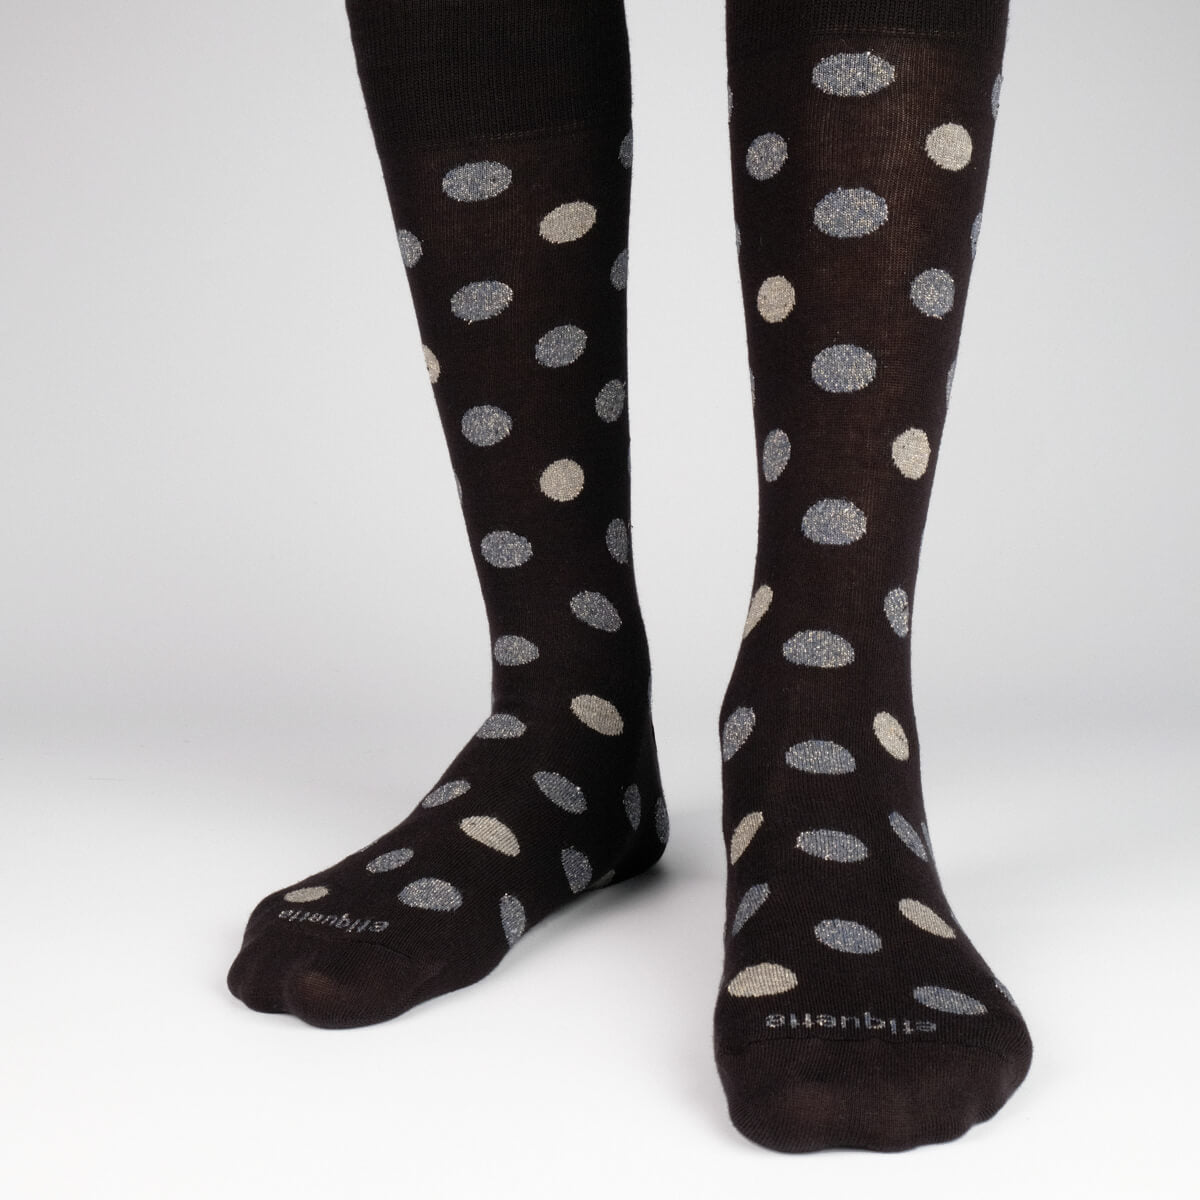 Mens Socks - Beat It Metallic Dots Men's Socks - Black⎪Etiquette Clothiers